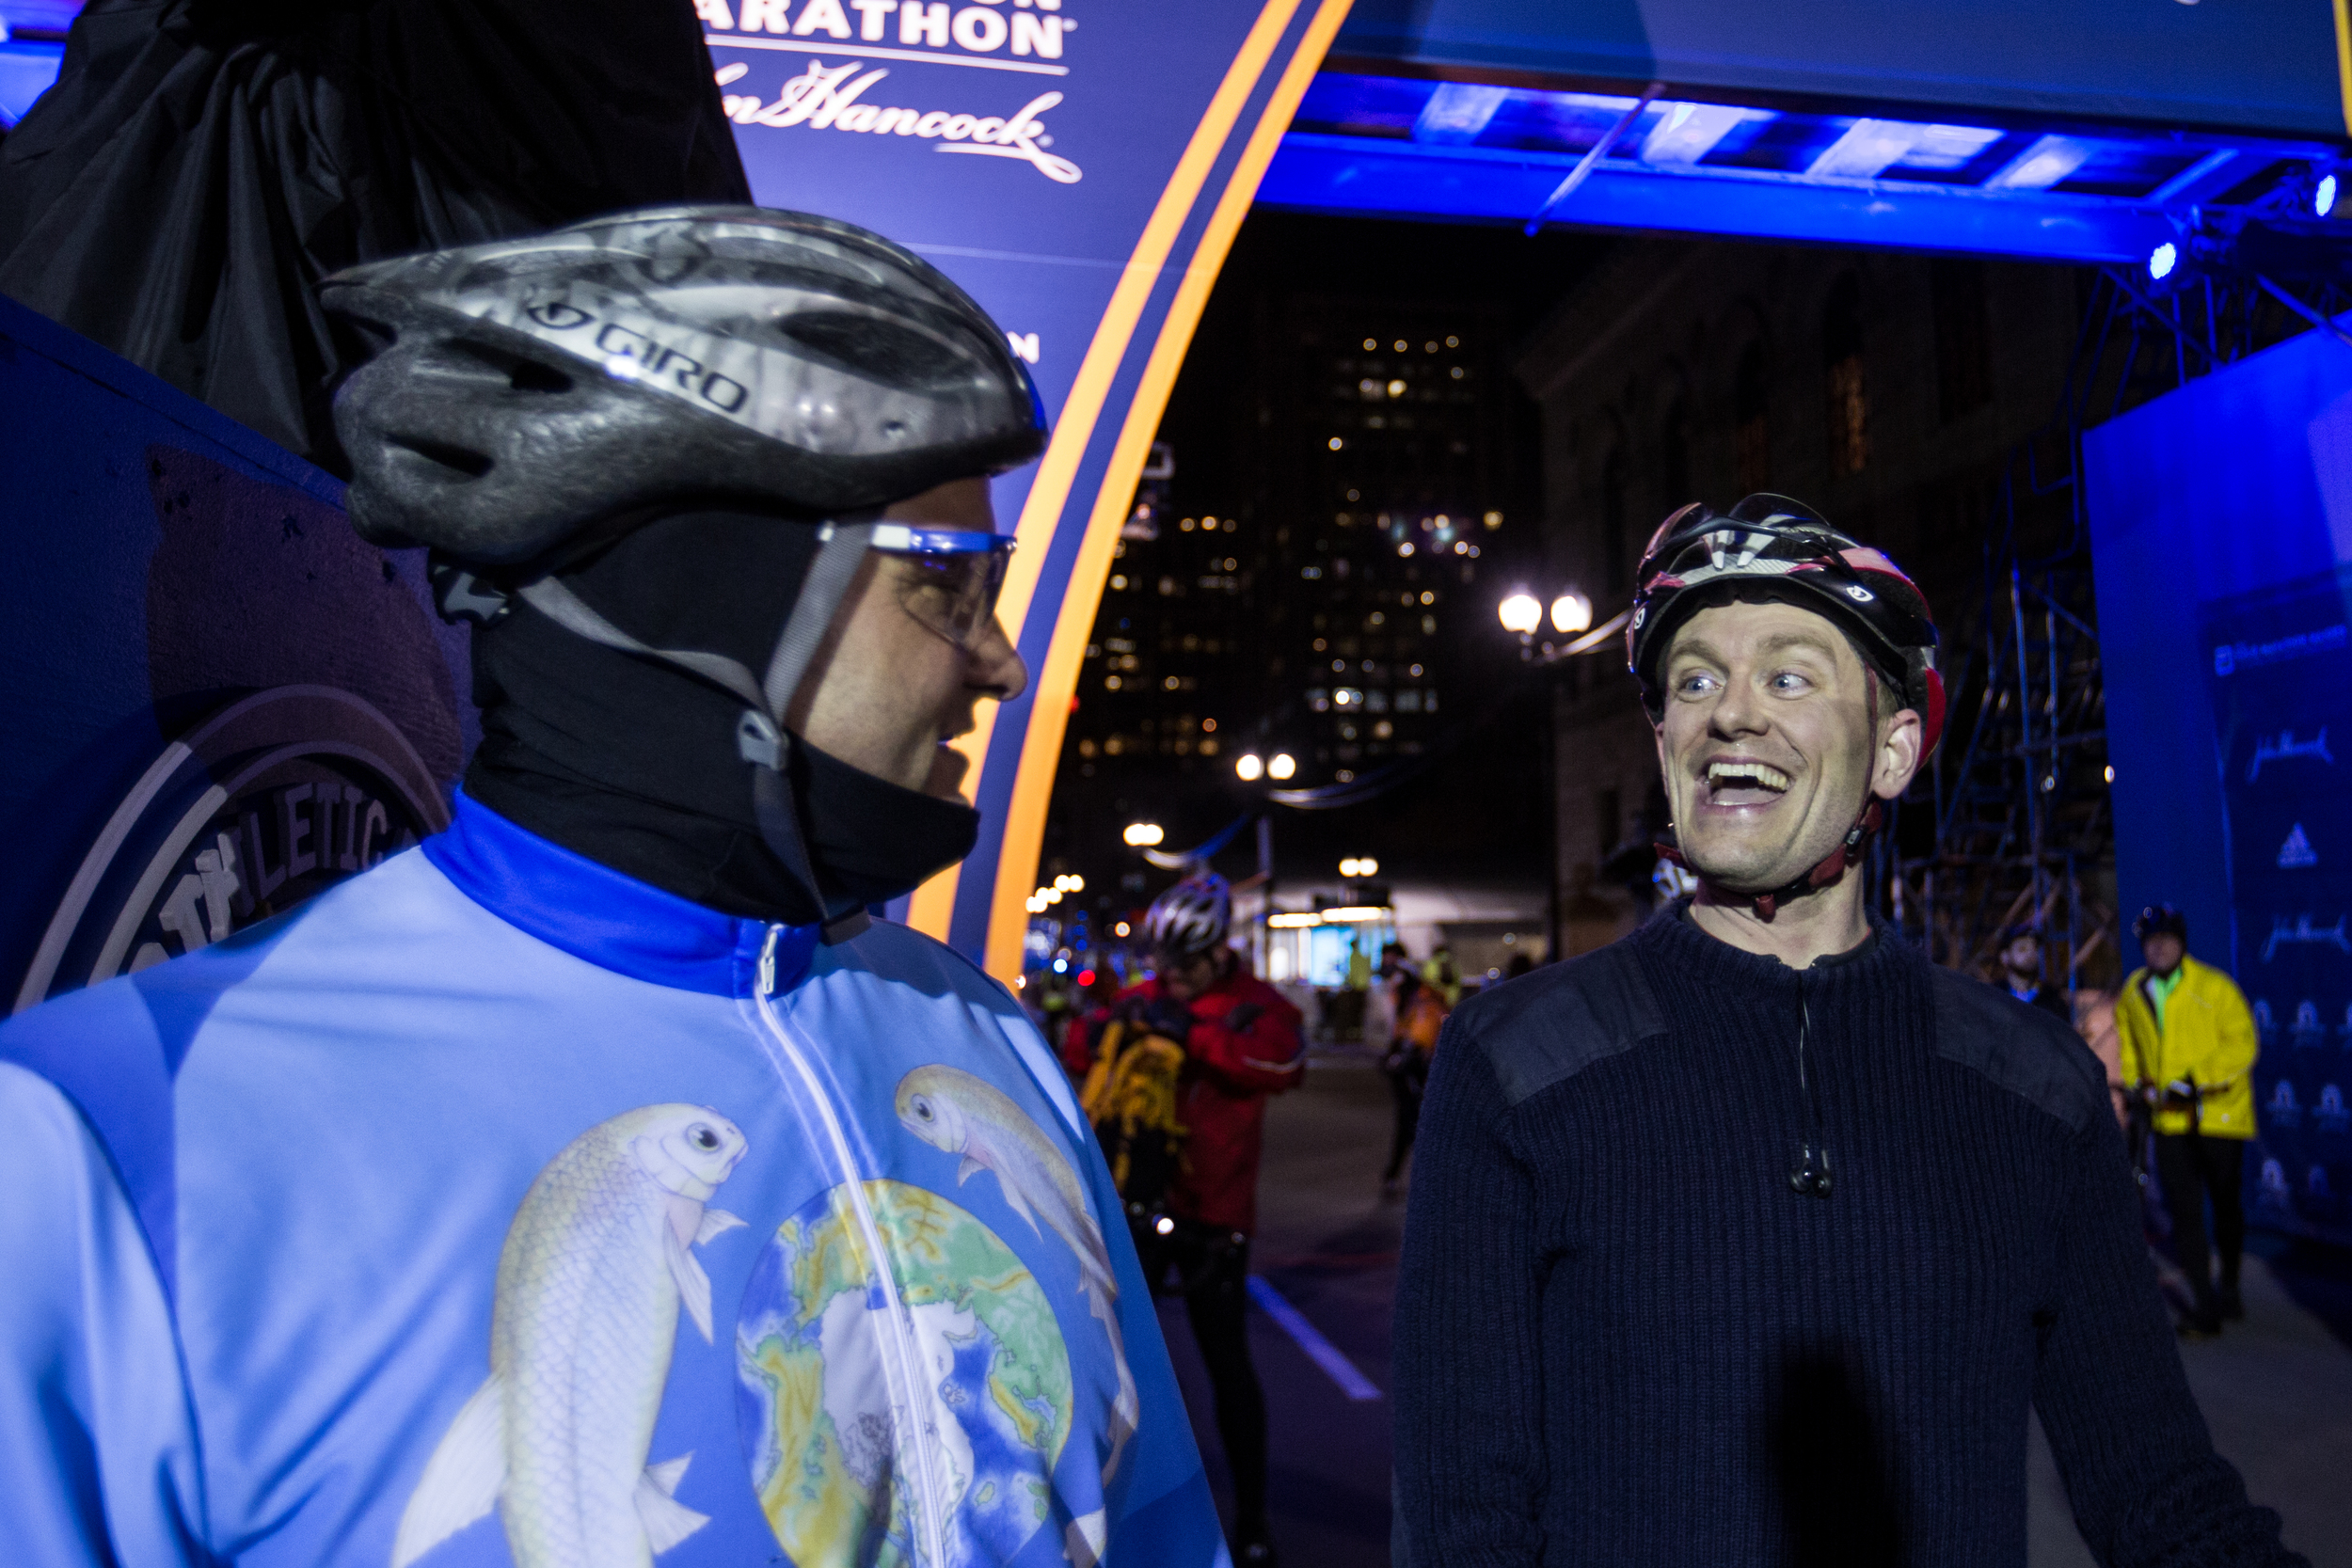 (From left) Ulysses Sallum and David Haines laugh after completing the Midnight Marathon Bike Ride, which begins at midnight on April 18 in Hopkington, Mass., and traverses the route of the Boston Marathon.